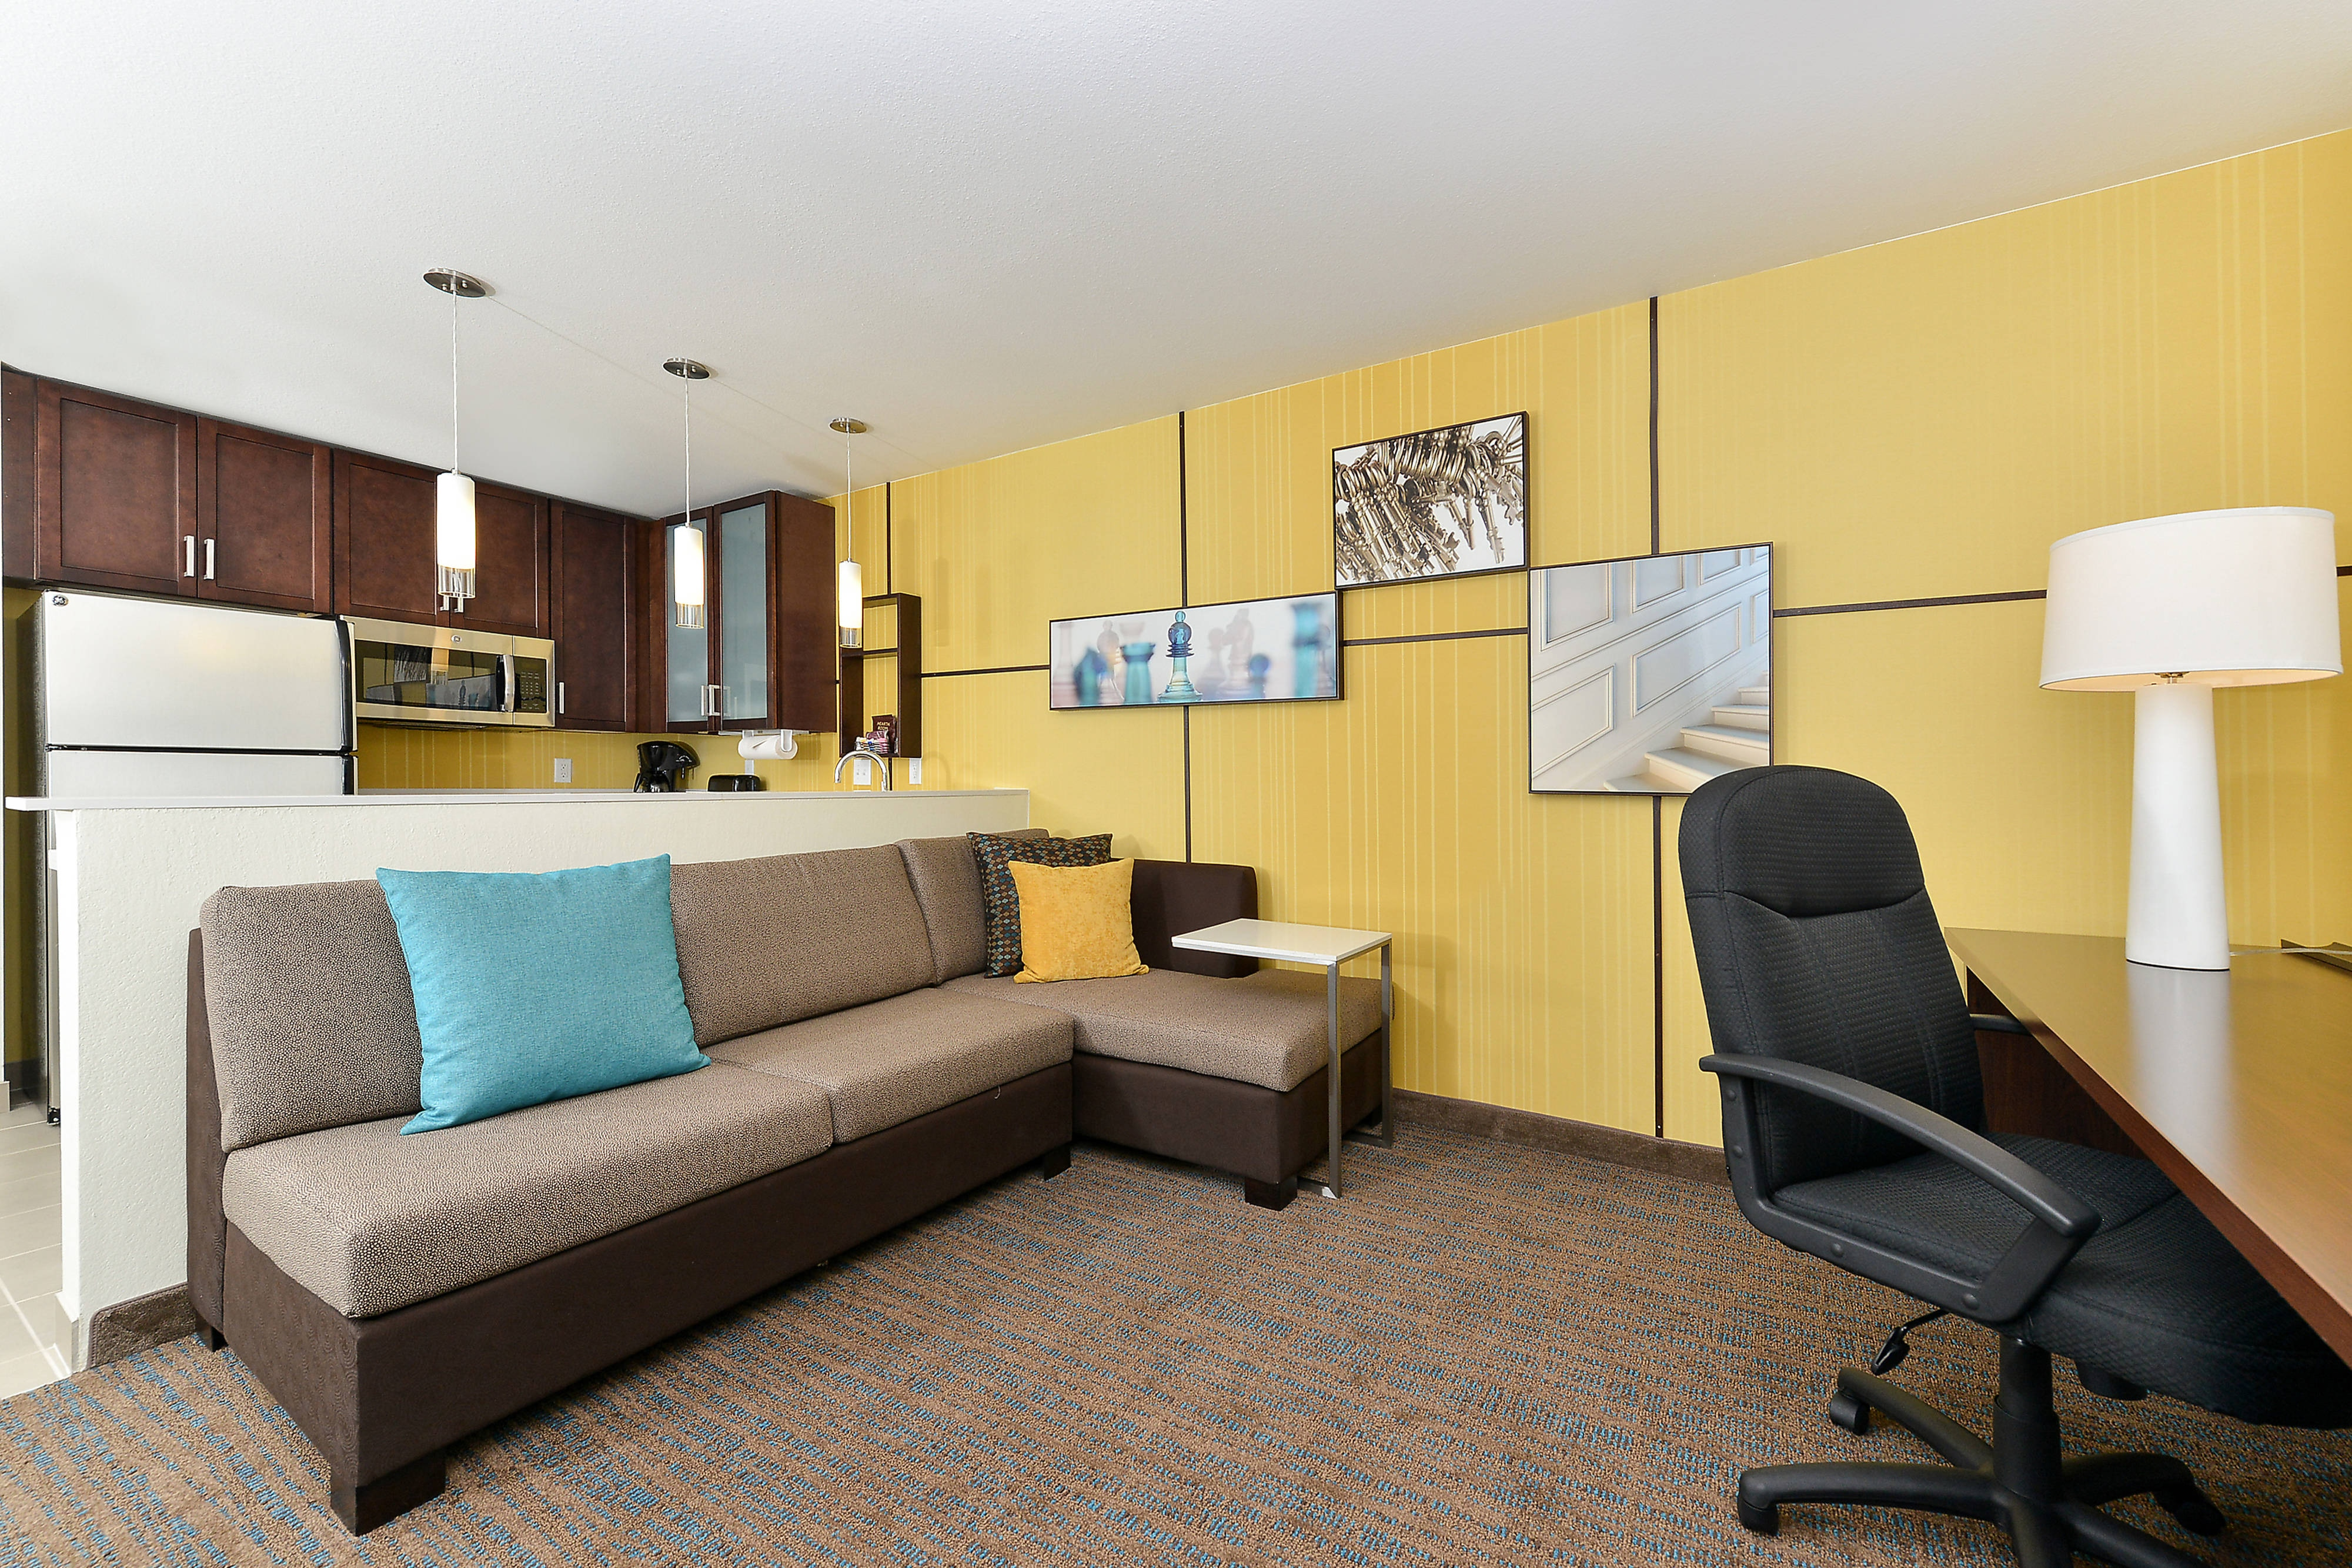 sofas by design des moines braxton leather sectional sofa residence inn downtown hotel amenities